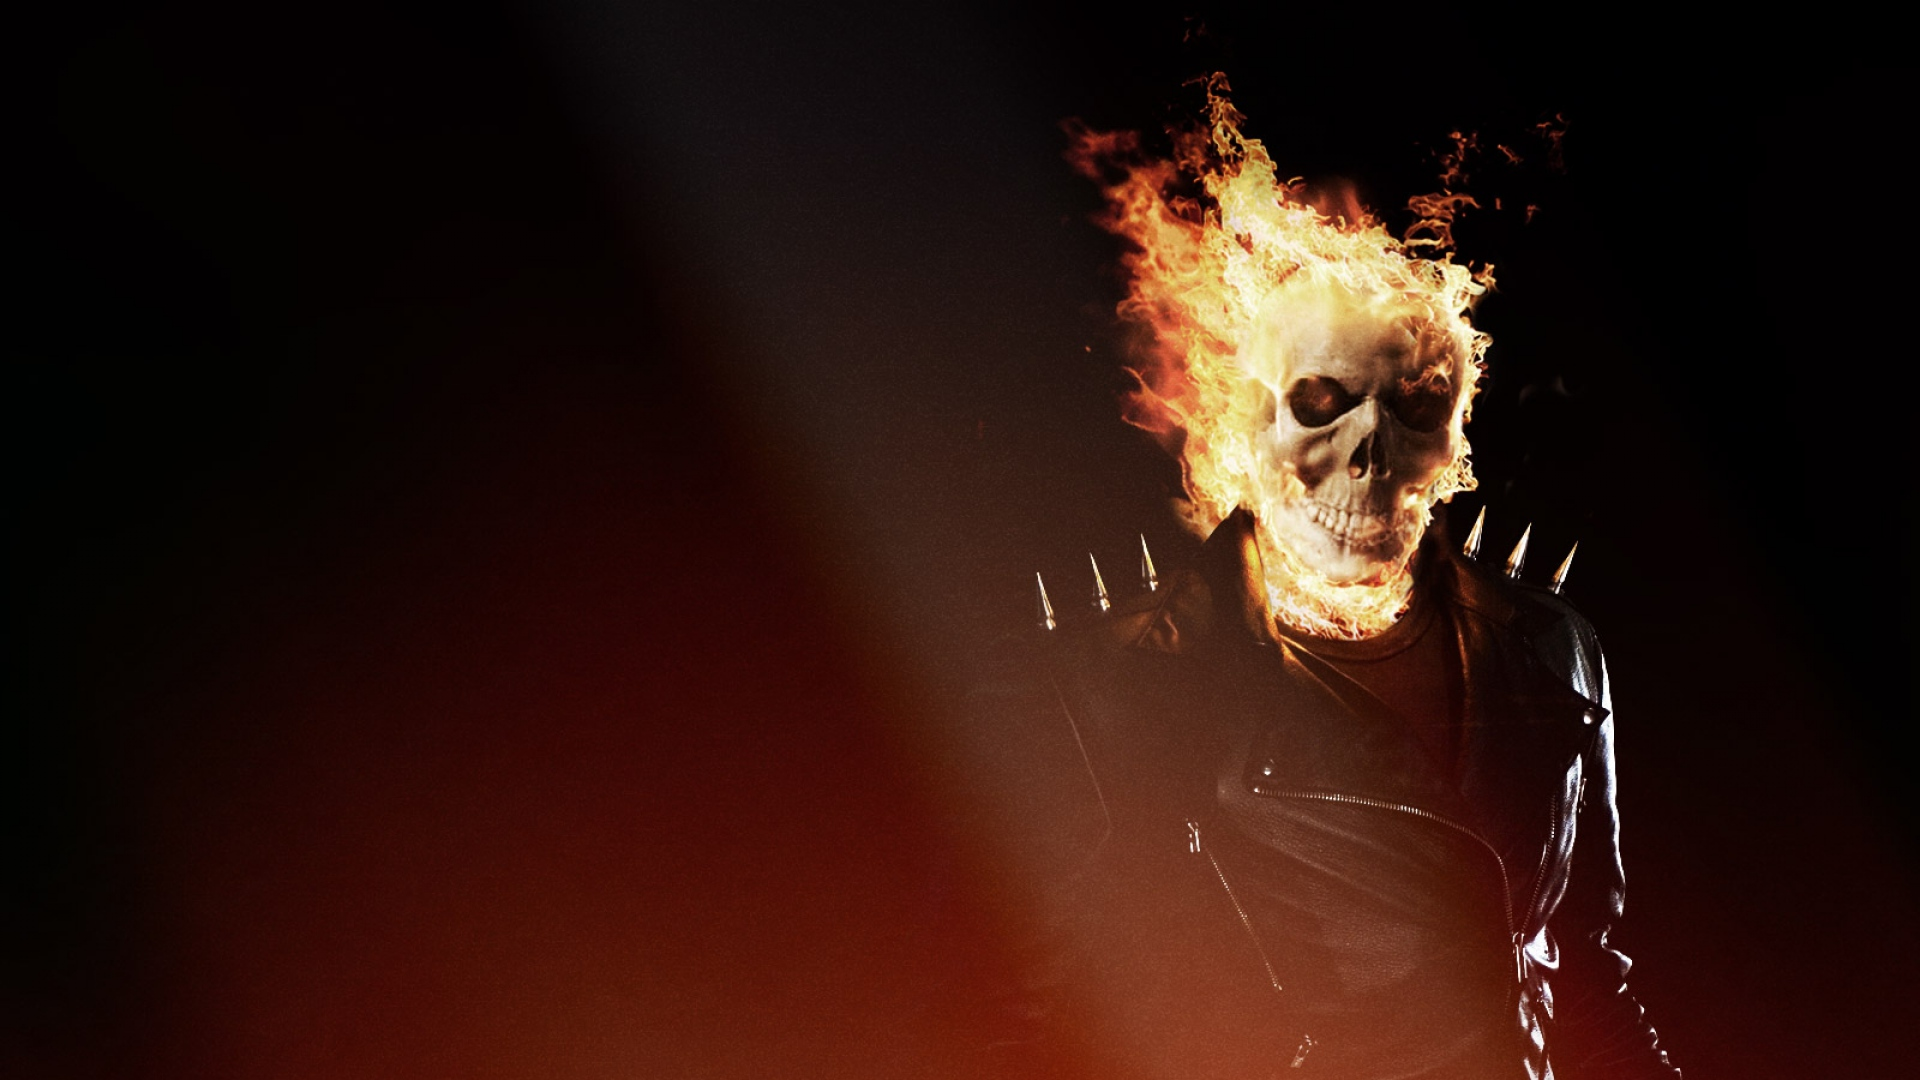 download wallpaper 1920x1080 ghost rider, skull, fire, flame full hd